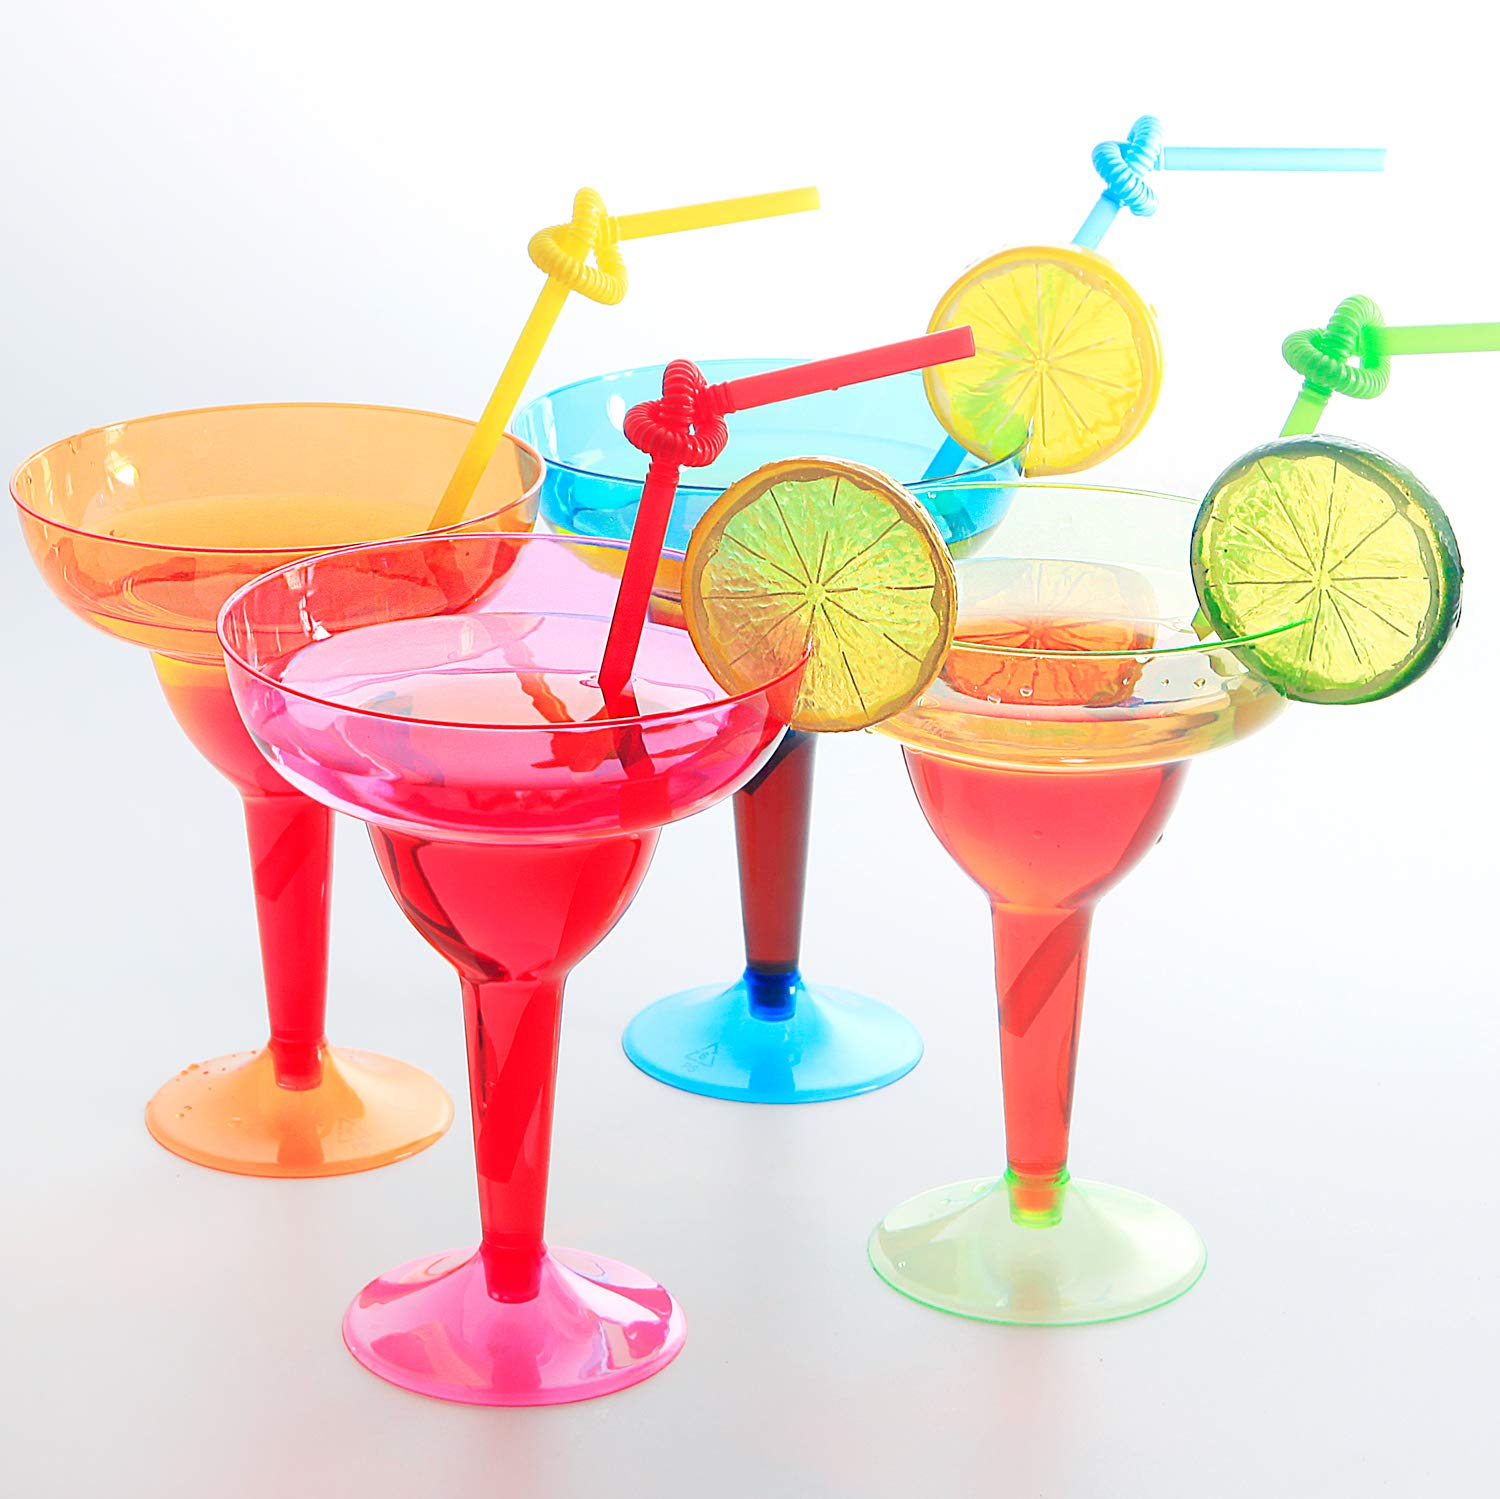 Set of 36pcs Plastic Margarita Glasses, Disposable Party Cups, Colorful Mexican Cocktail Party Decorations, 11oz,Disposable Neon Cups Assorted Four Color, Green, Blue, Pink, Orange, Supernal by Supernal